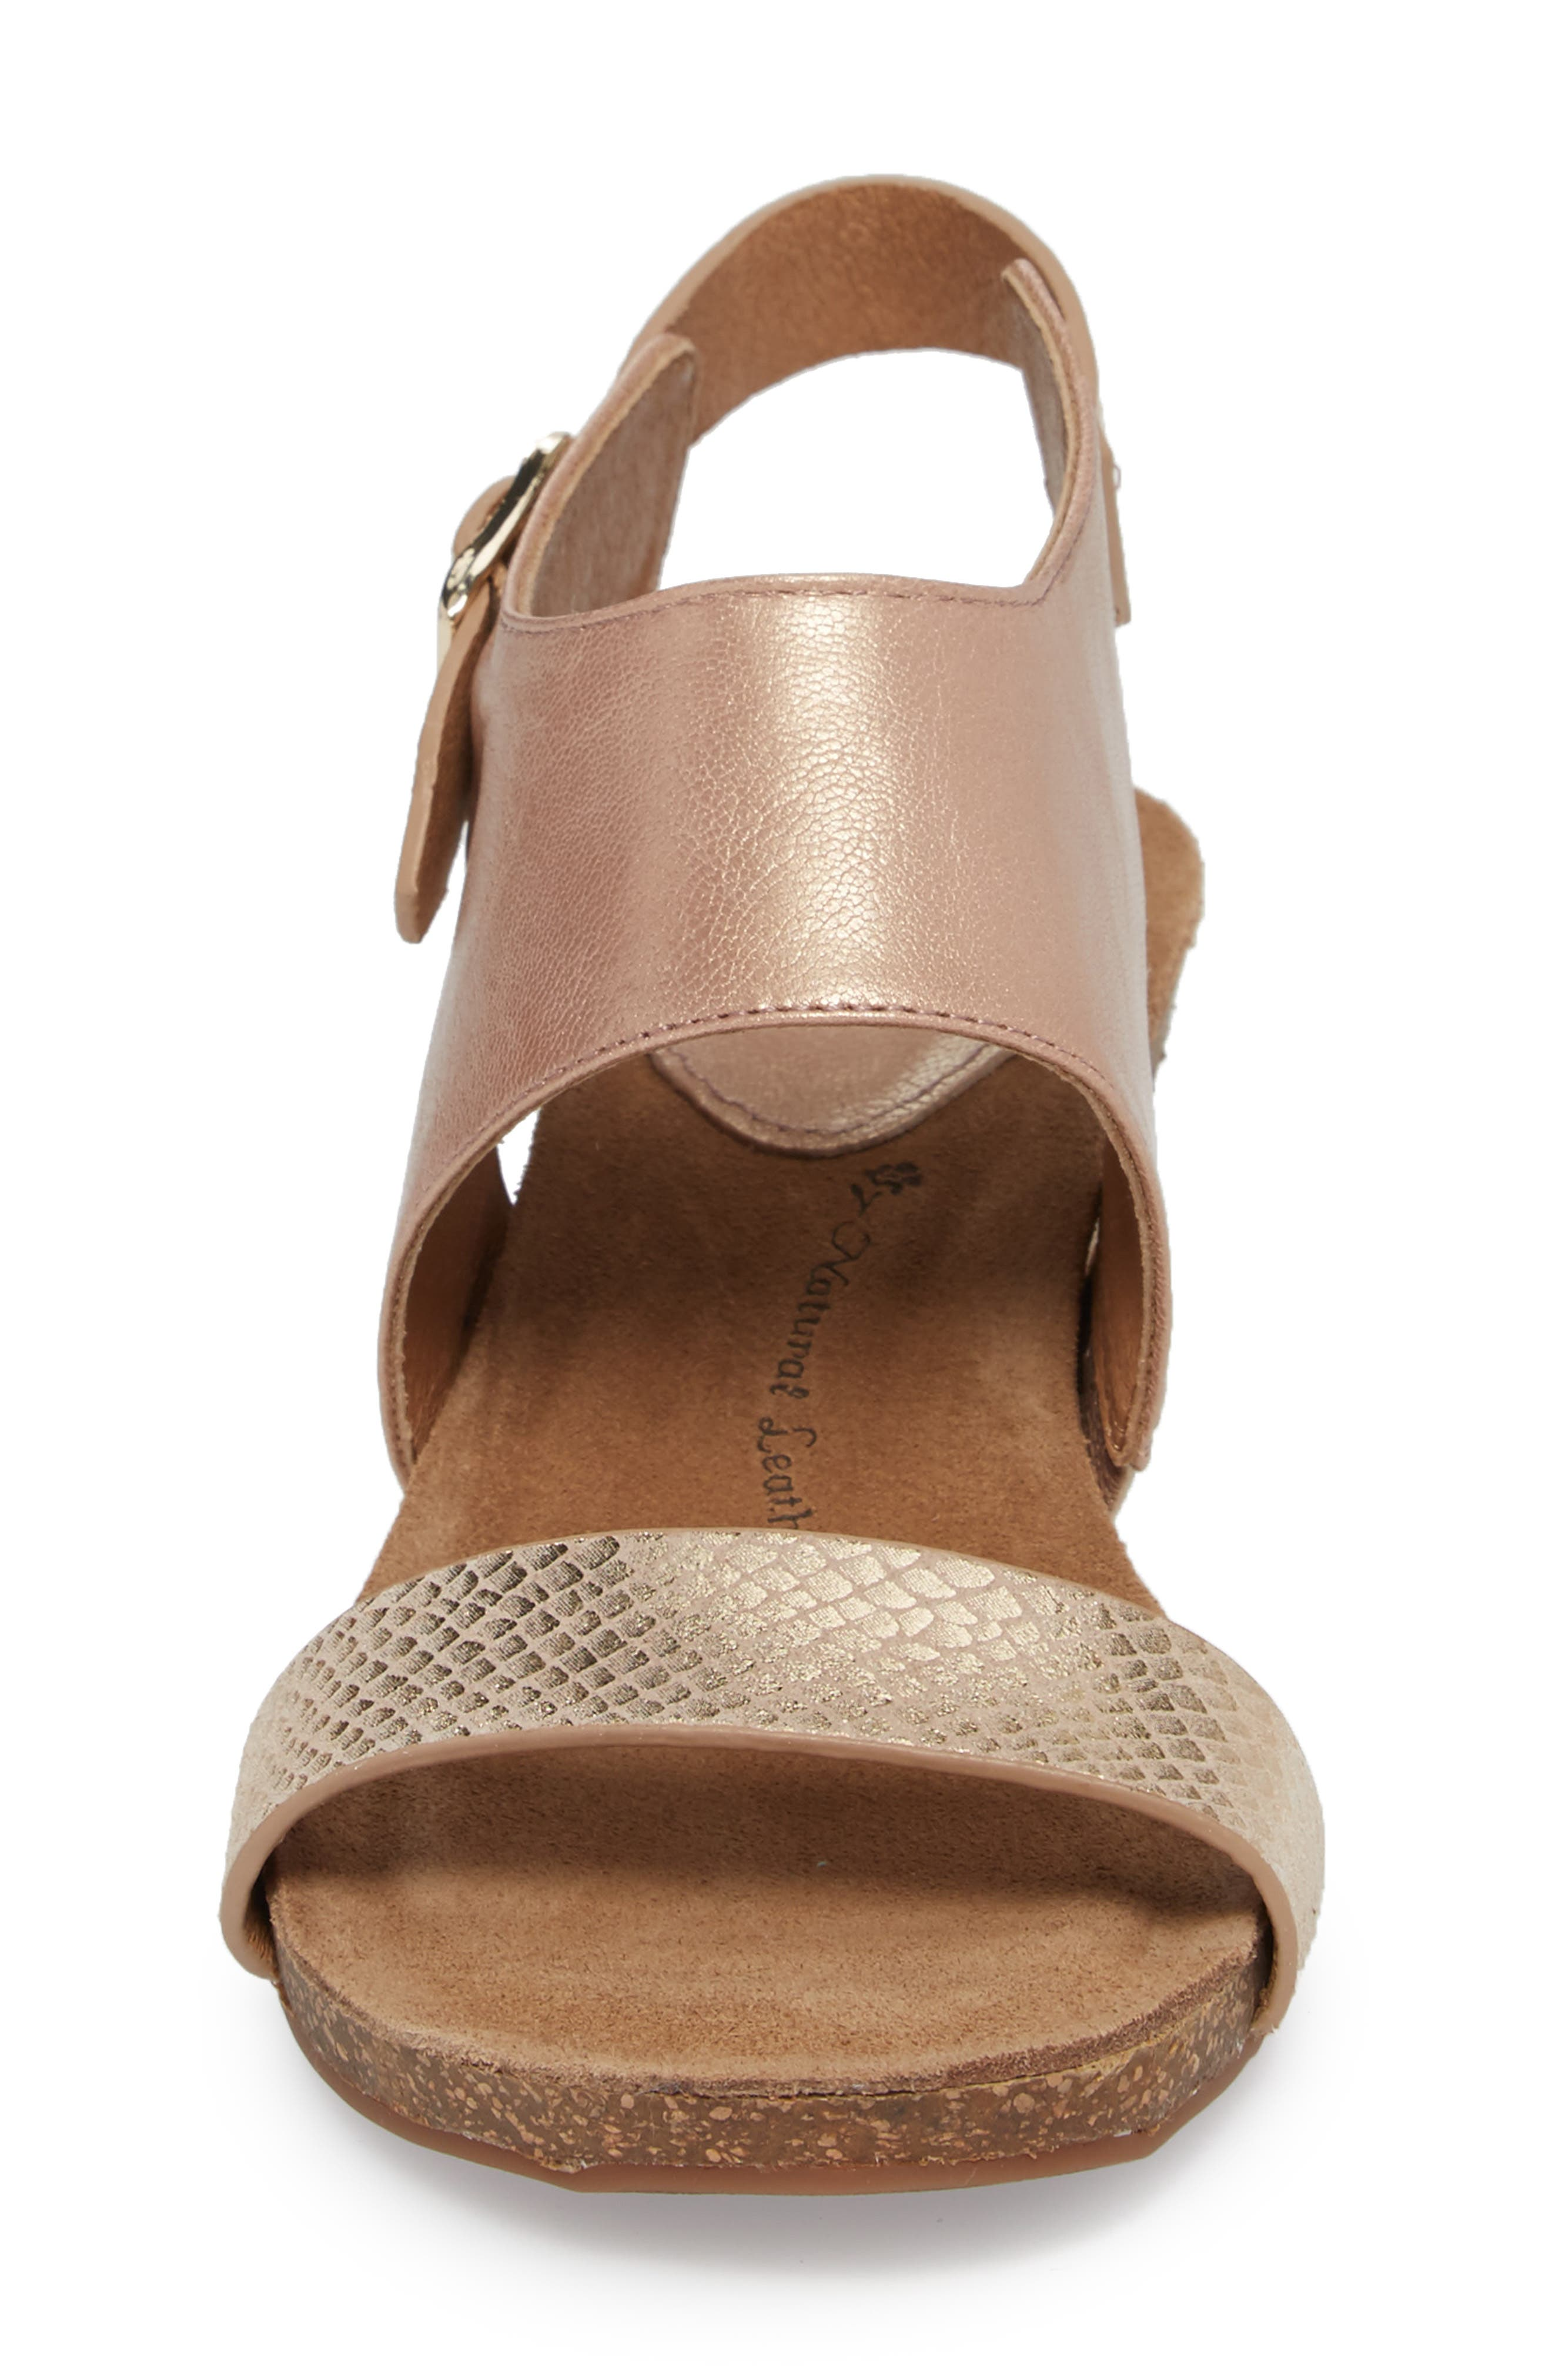 'Vanita' Leather Sandal,                             Alternate thumbnail 4, color,                             CHAMPAGNE/ GOLD LEATHER